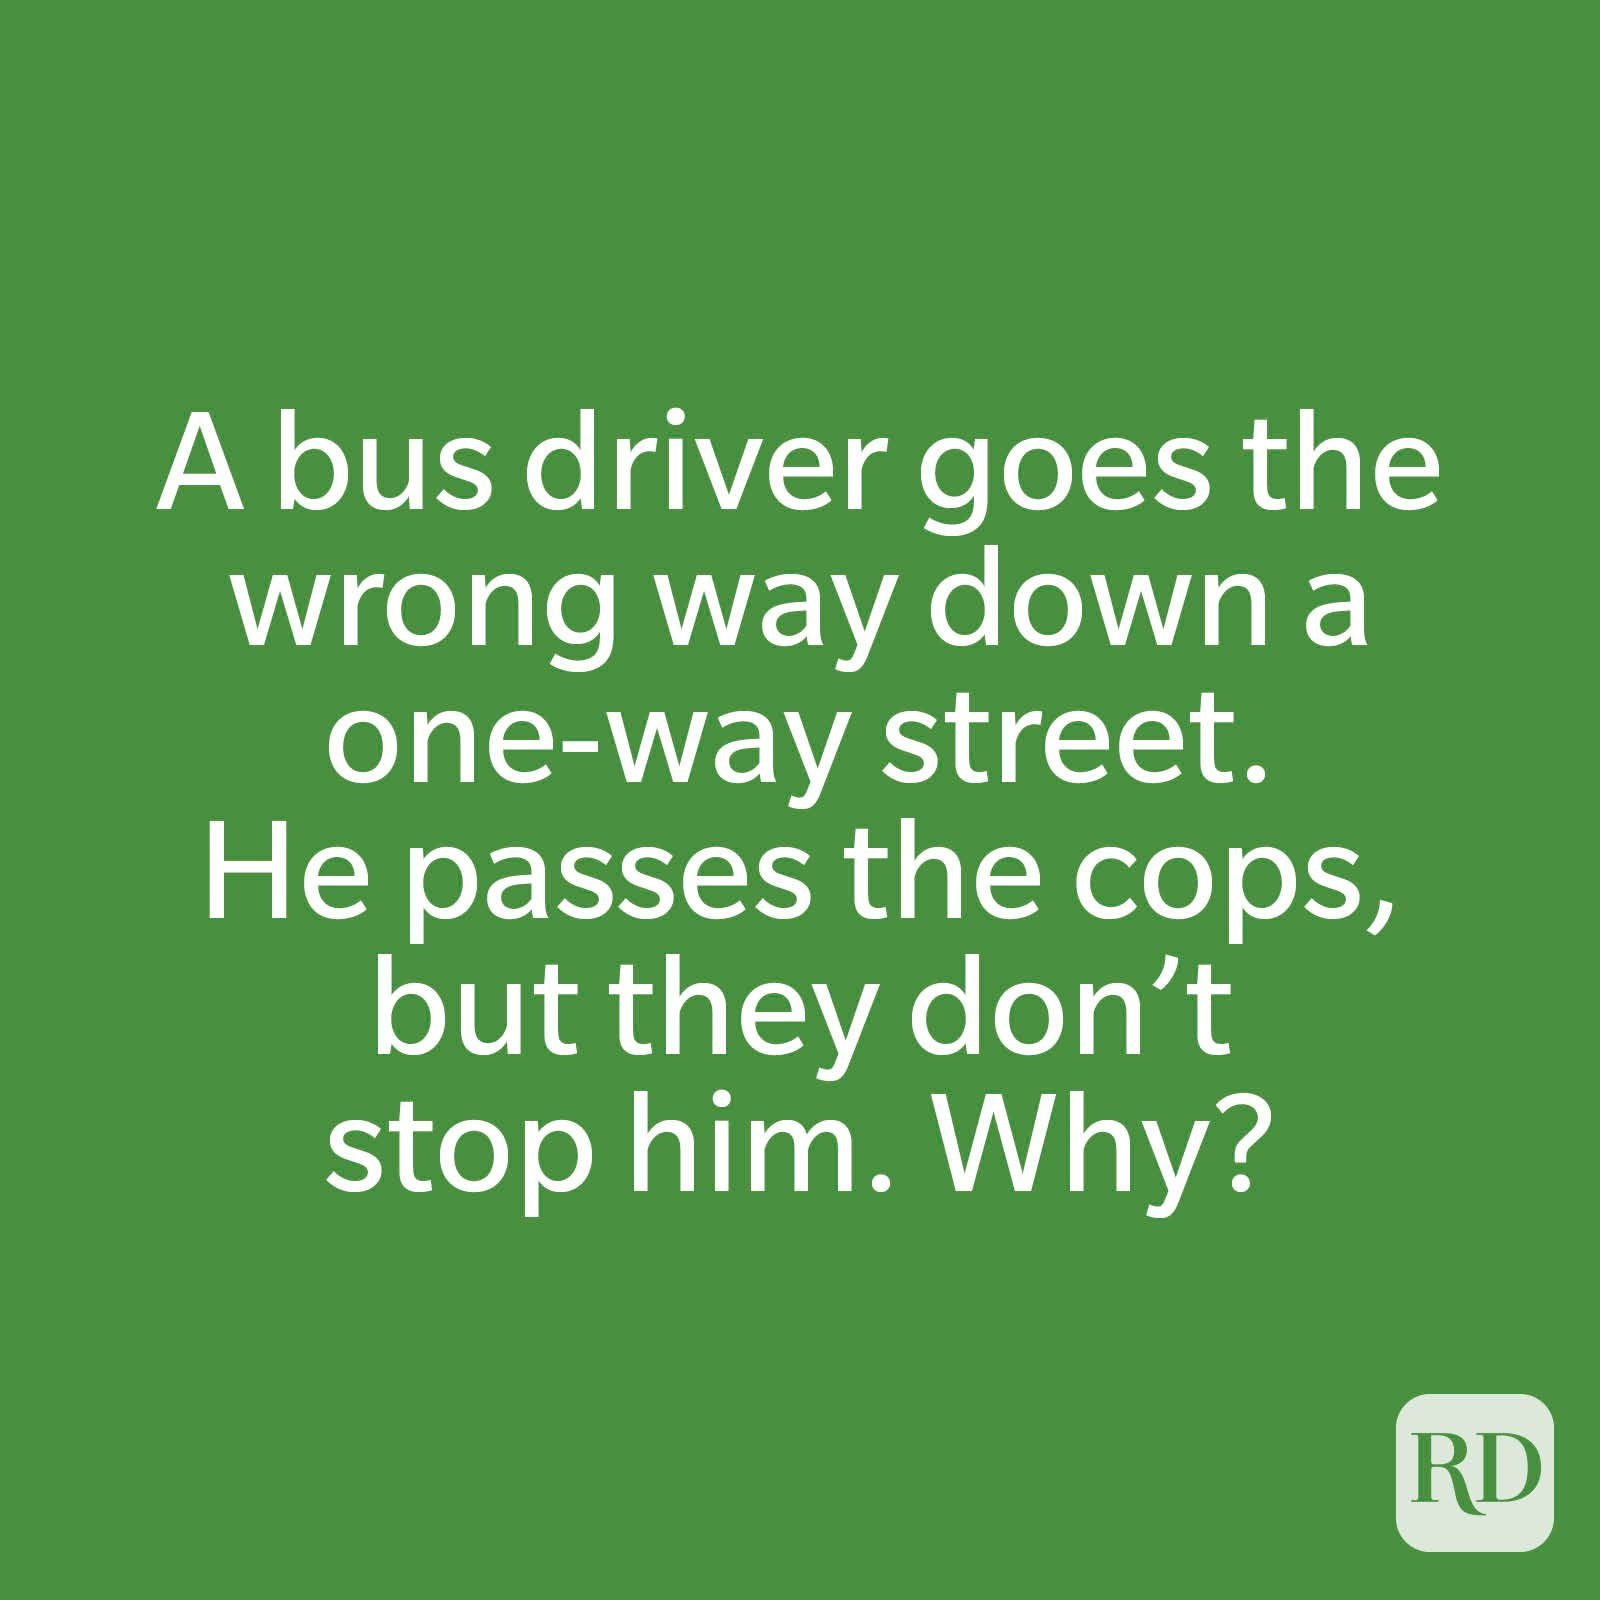 A bus driver goes the wrong way down a one-way street. He passes the cops, but they don't stop him. Why?